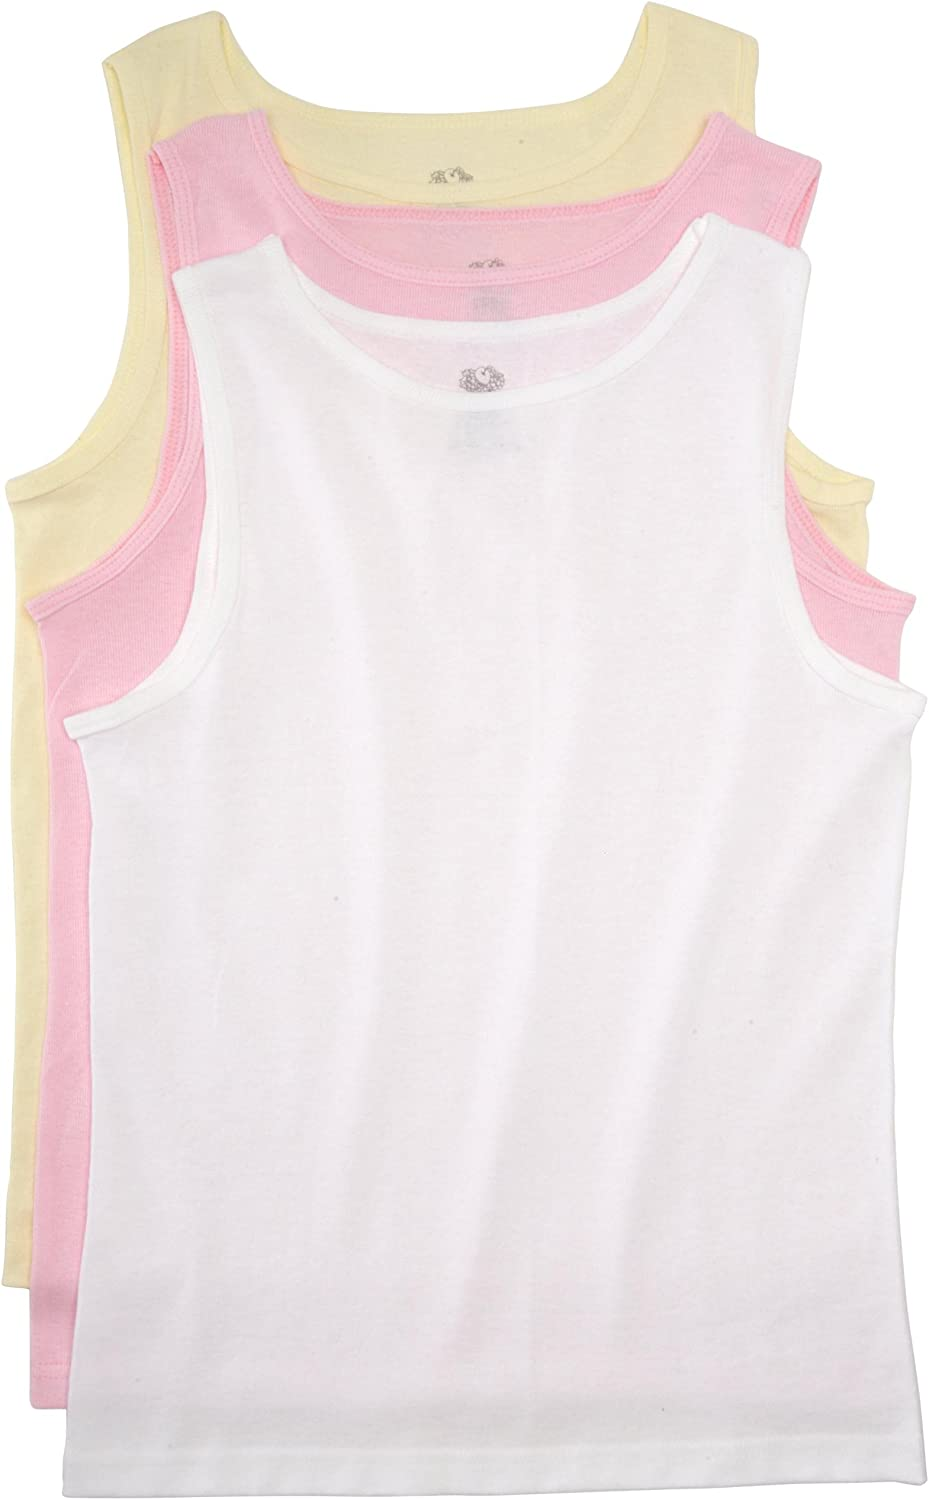 Tank - 3 Pack - White, Large Fruit of the Loom Girls Undershirts Camis /& Tanks